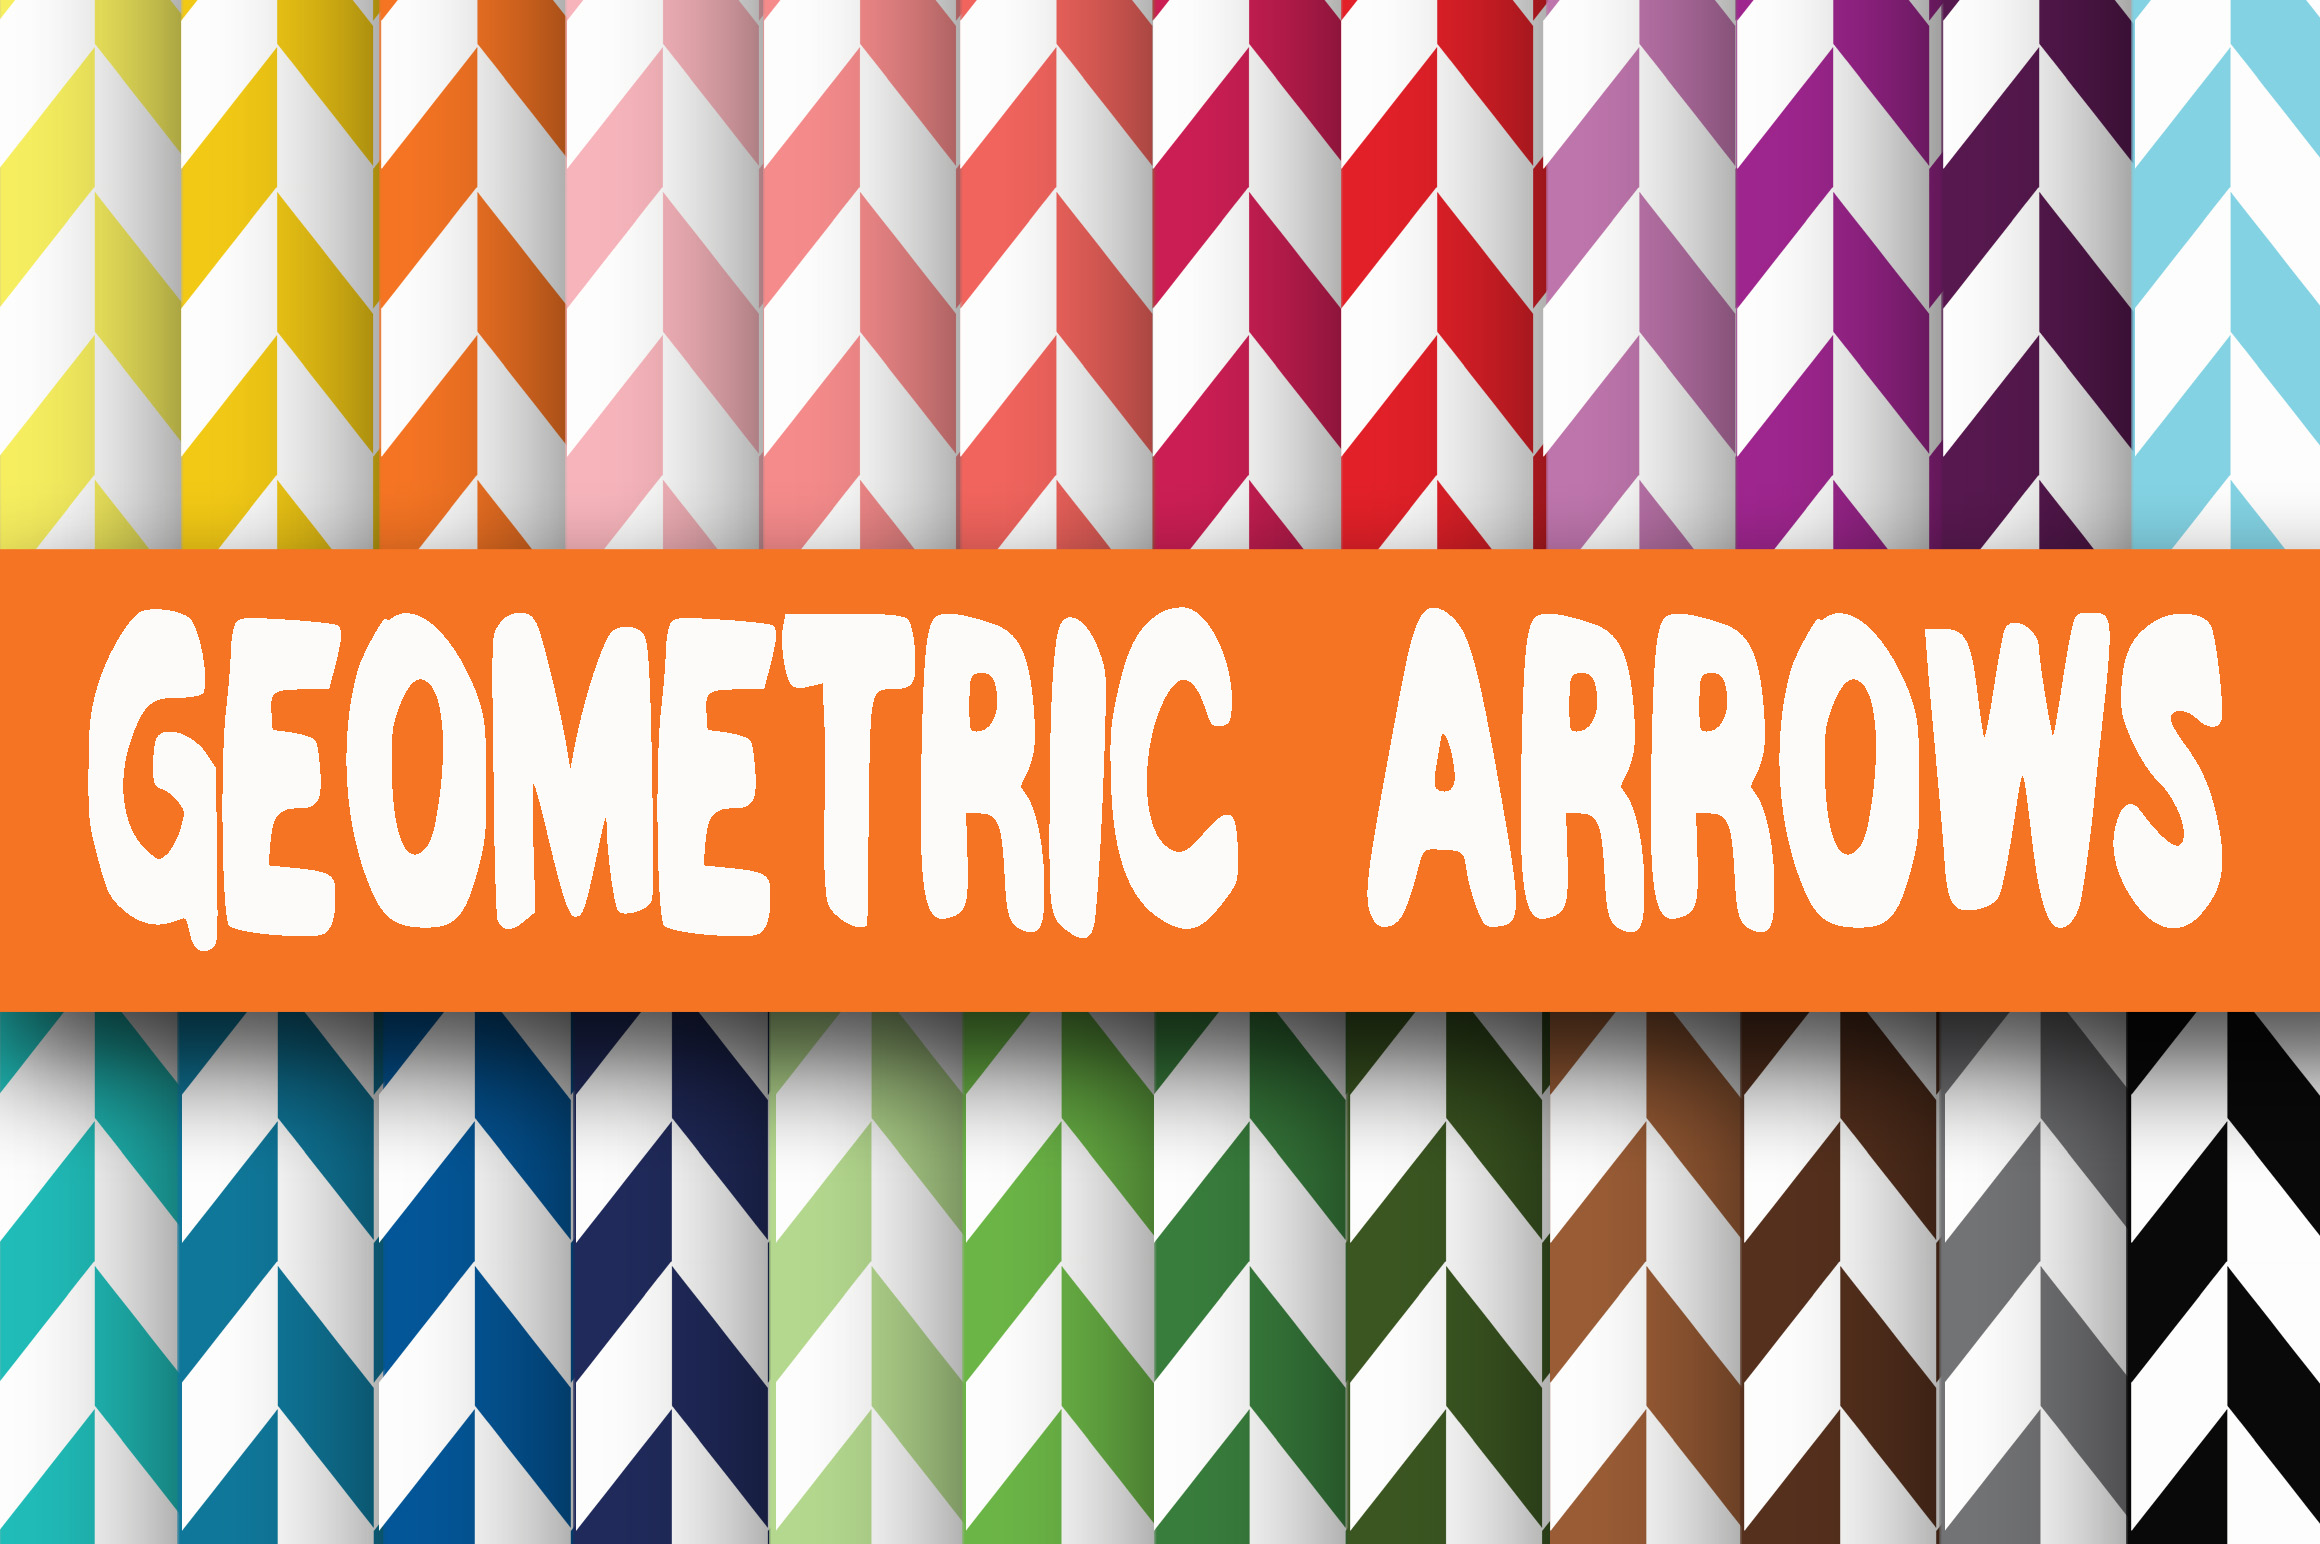 Download Free Geometric Arrows Digital Paper Graphic By Oldmarketdesigns for Cricut Explore, Silhouette and other cutting machines.